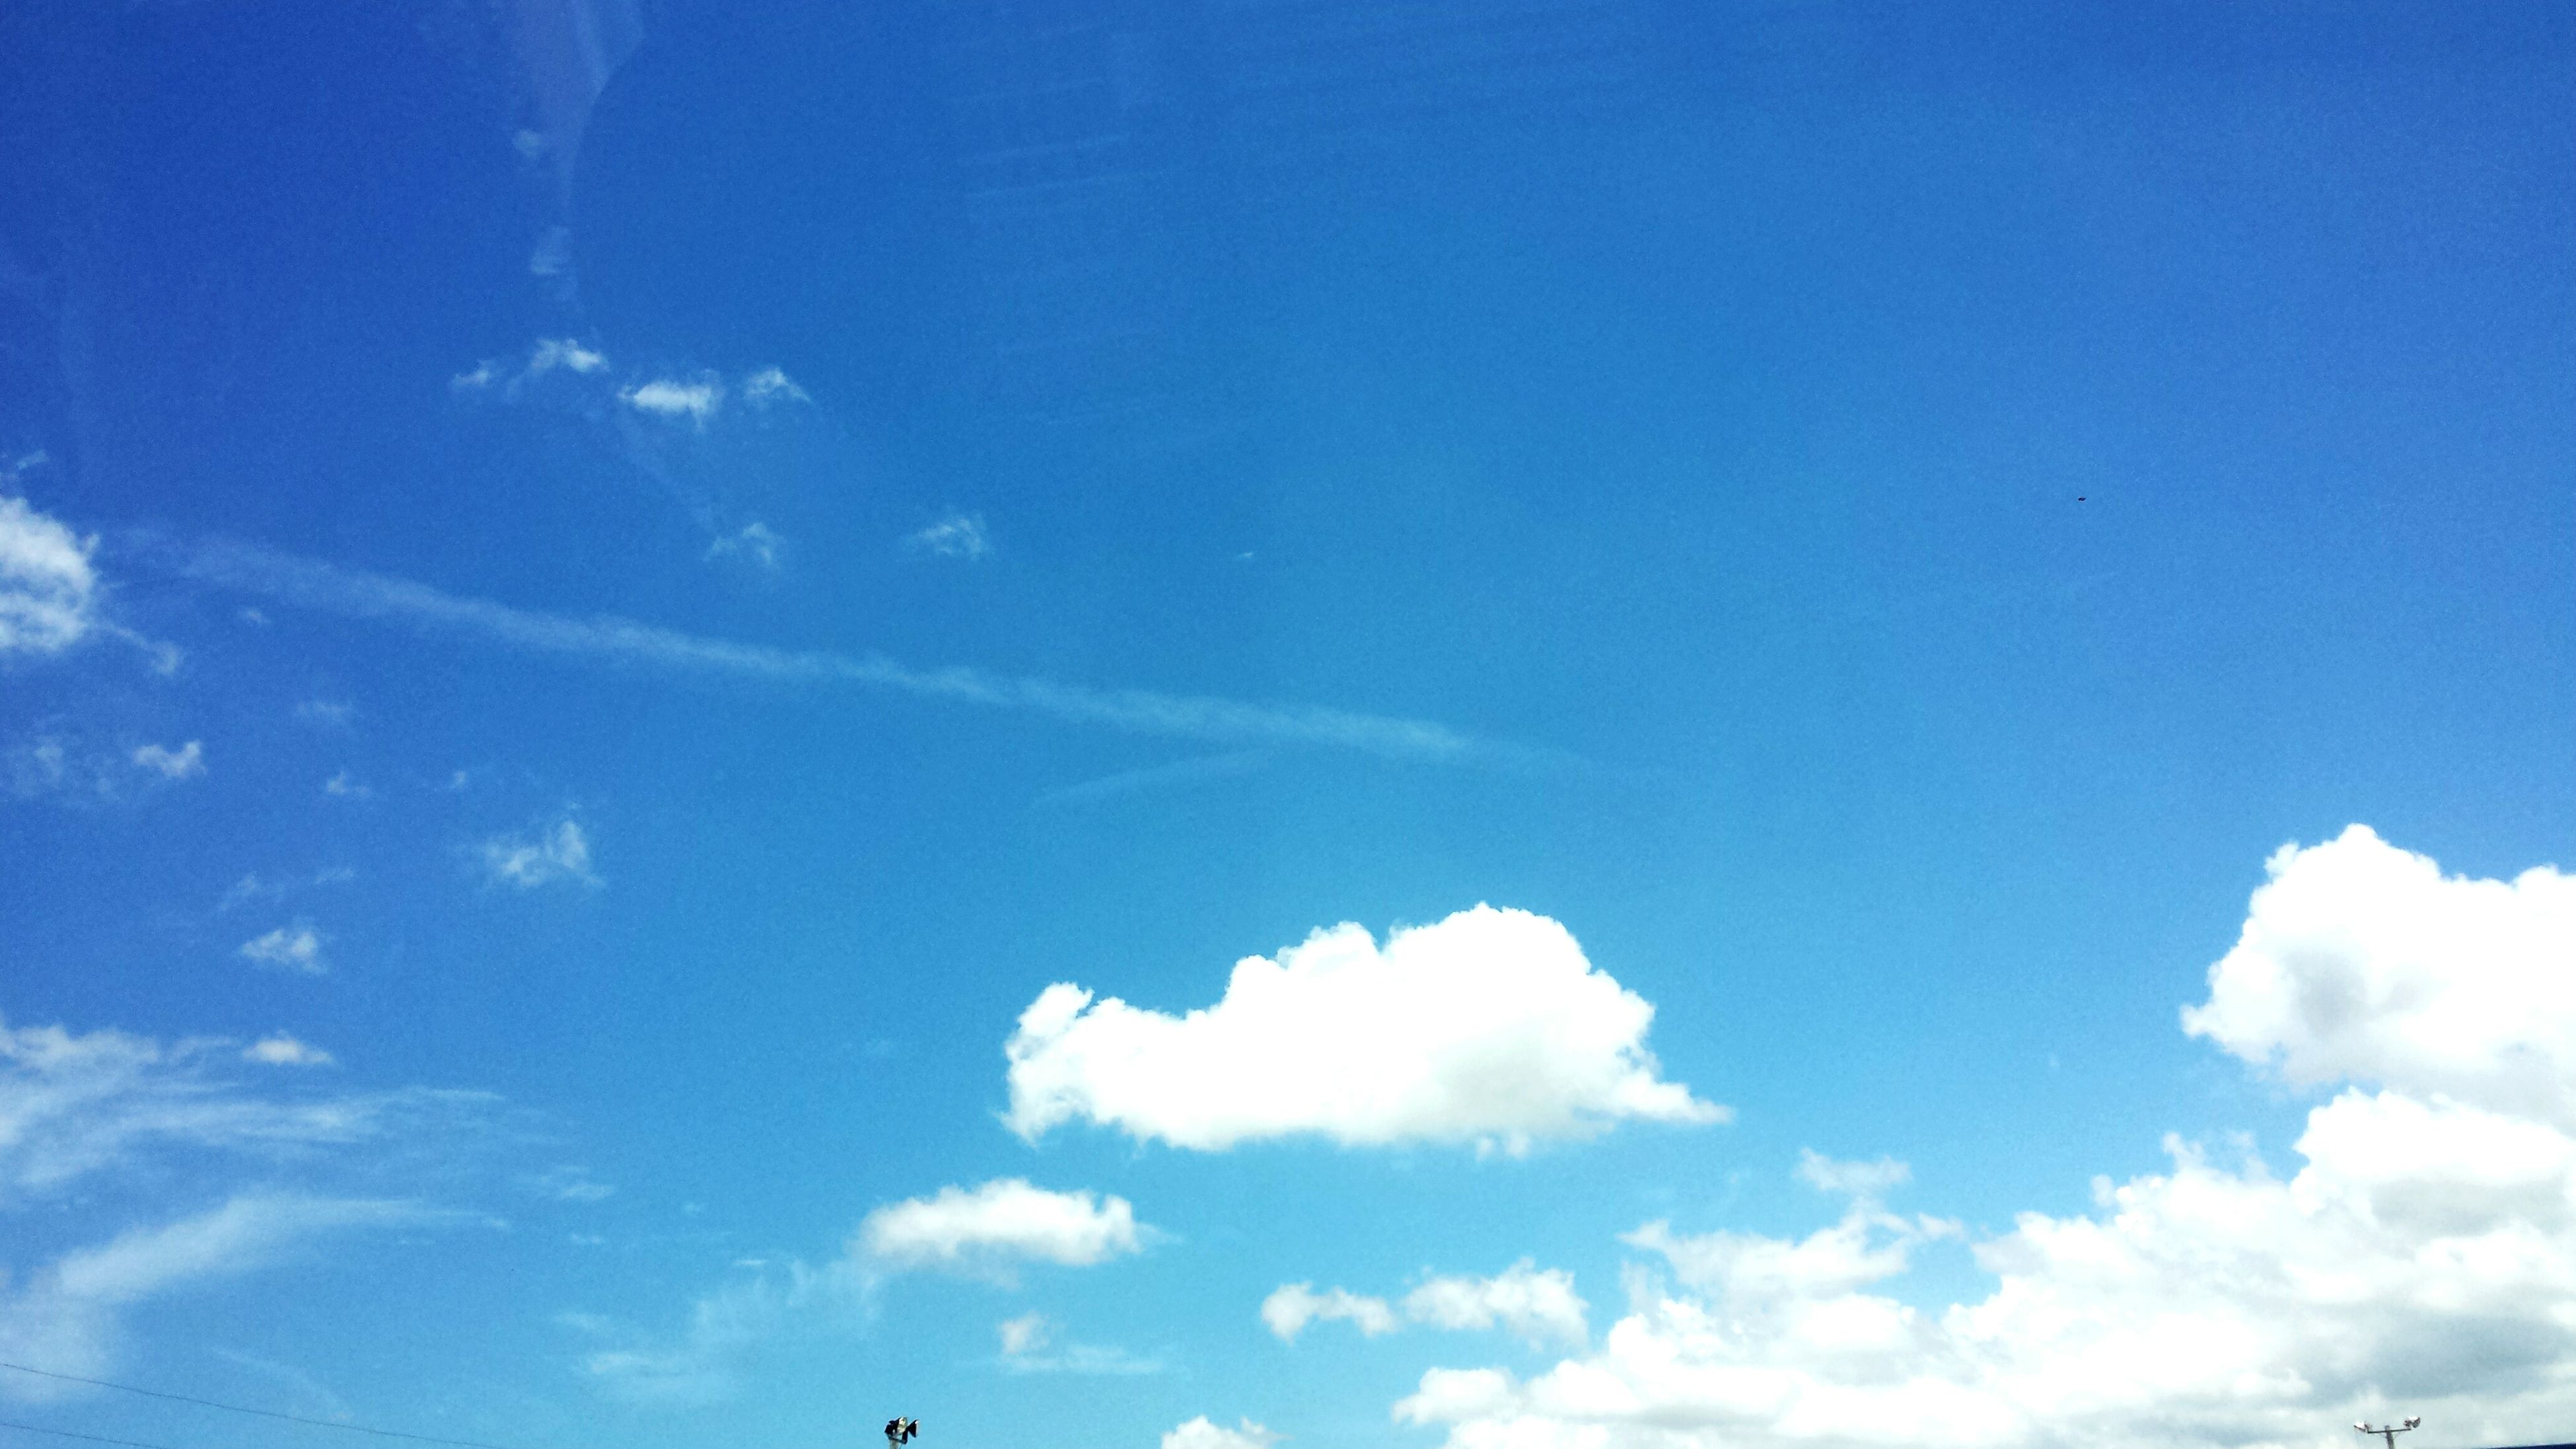 blue, low angle view, sky, beauty in nature, tranquility, nature, cloud - sky, sky only, scenics, tranquil scene, cloud, day, outdoors, copy space, white color, no people, idyllic, sunlight, backgrounds, cloudscape